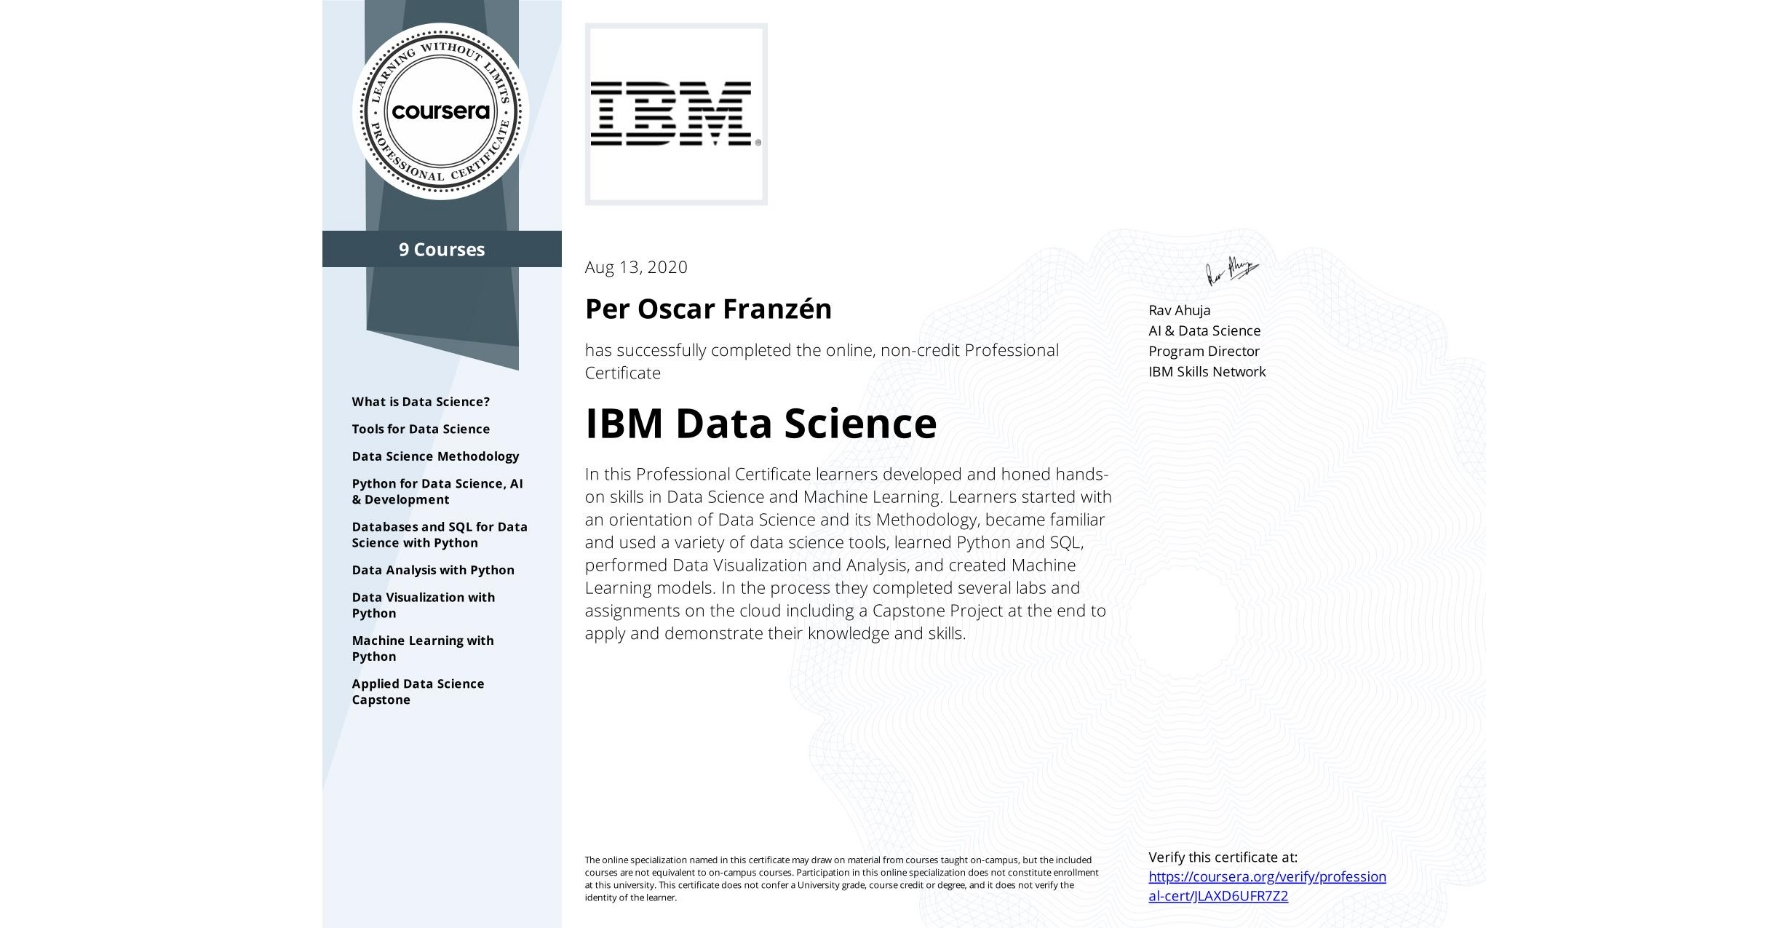 View certificate for Per Oscar  Franzén, IBM Data Science, offered through Coursera. In this Professional Certificate learners developed and honed hands-on skills in Data Science and Machine Learning. Learners started with an orientation of Data Science and its Methodology, became familiar and used a variety of data science tools, learned Python and SQL, performed Data Visualization and Analysis, and created Machine Learning models.  In the process they completed several labs and assignments on the cloud including a Capstone Project at the end to apply and demonstrate their knowledge and skills.